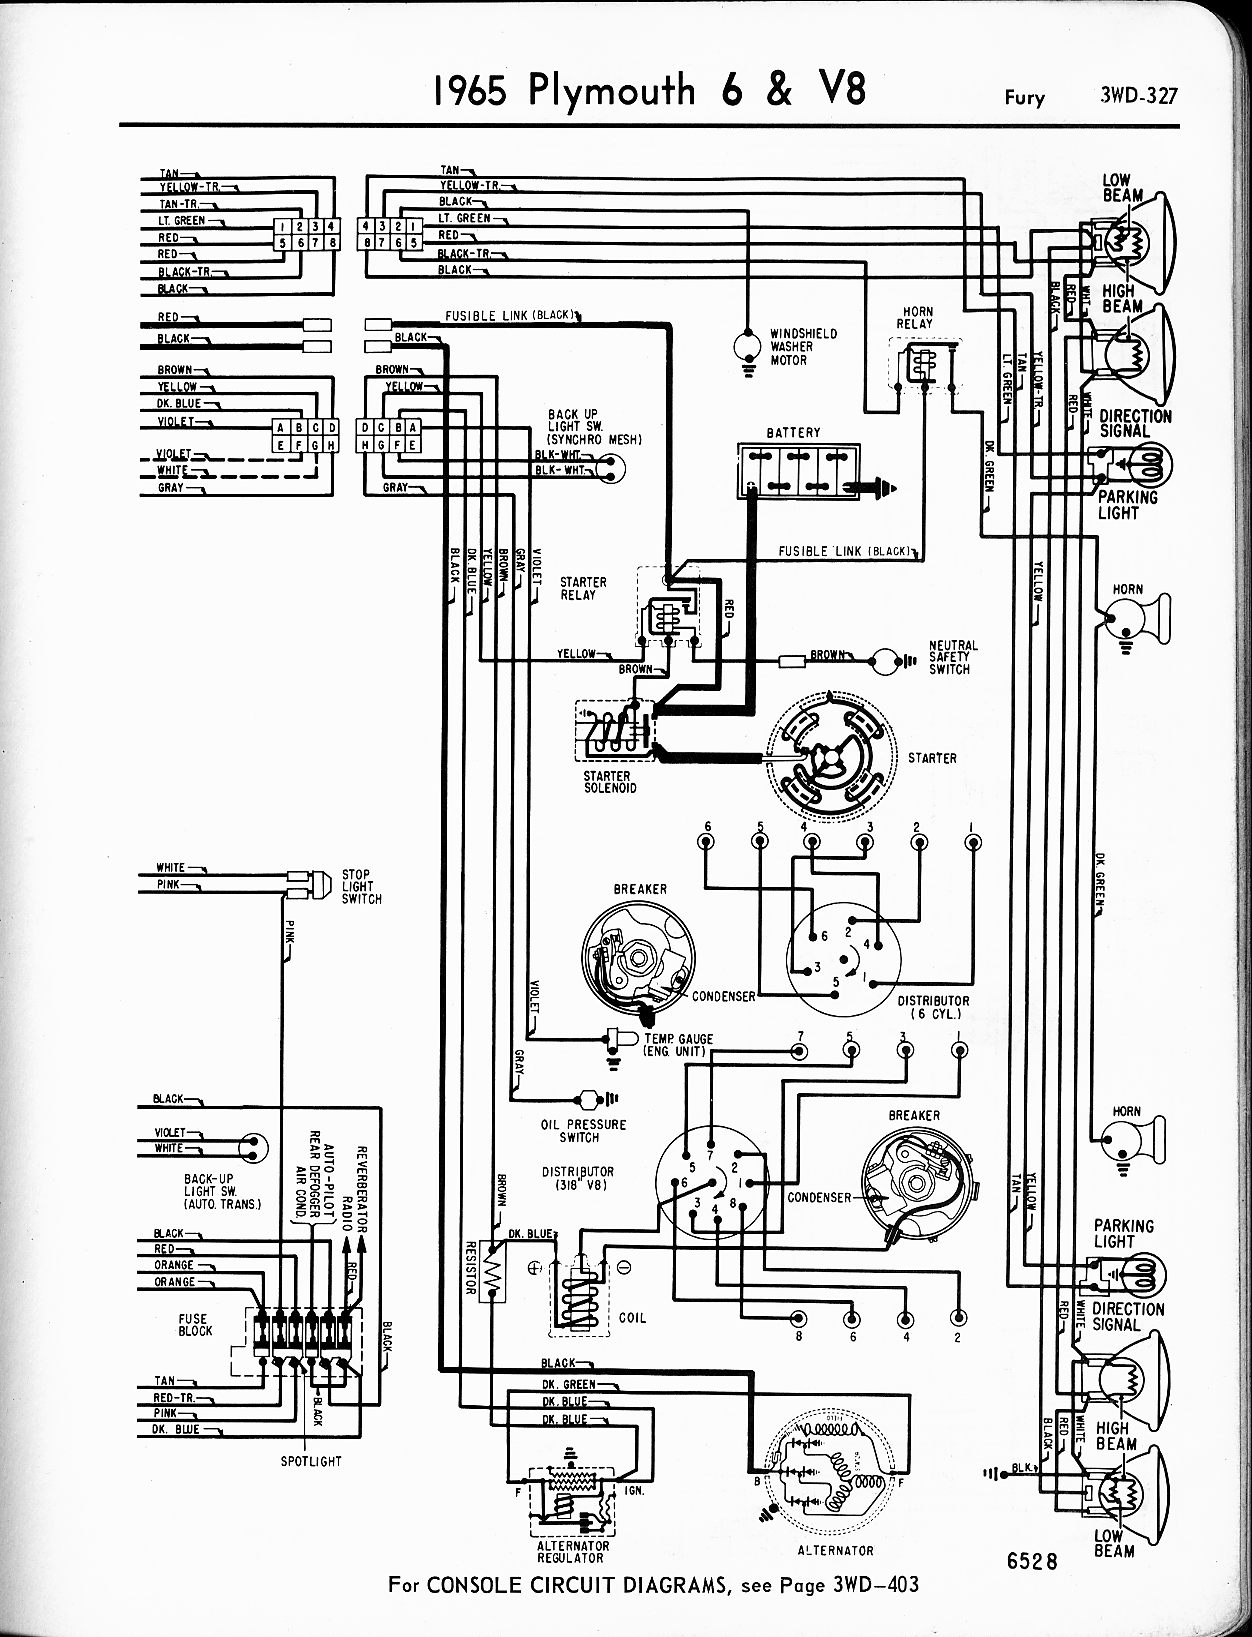 50 Plymouth Wiring Diagrams Find Diagram Alfa Romeo Start 1964 Chrysler Schematic Rh Blaknwyt Co 1934 Positive Ground